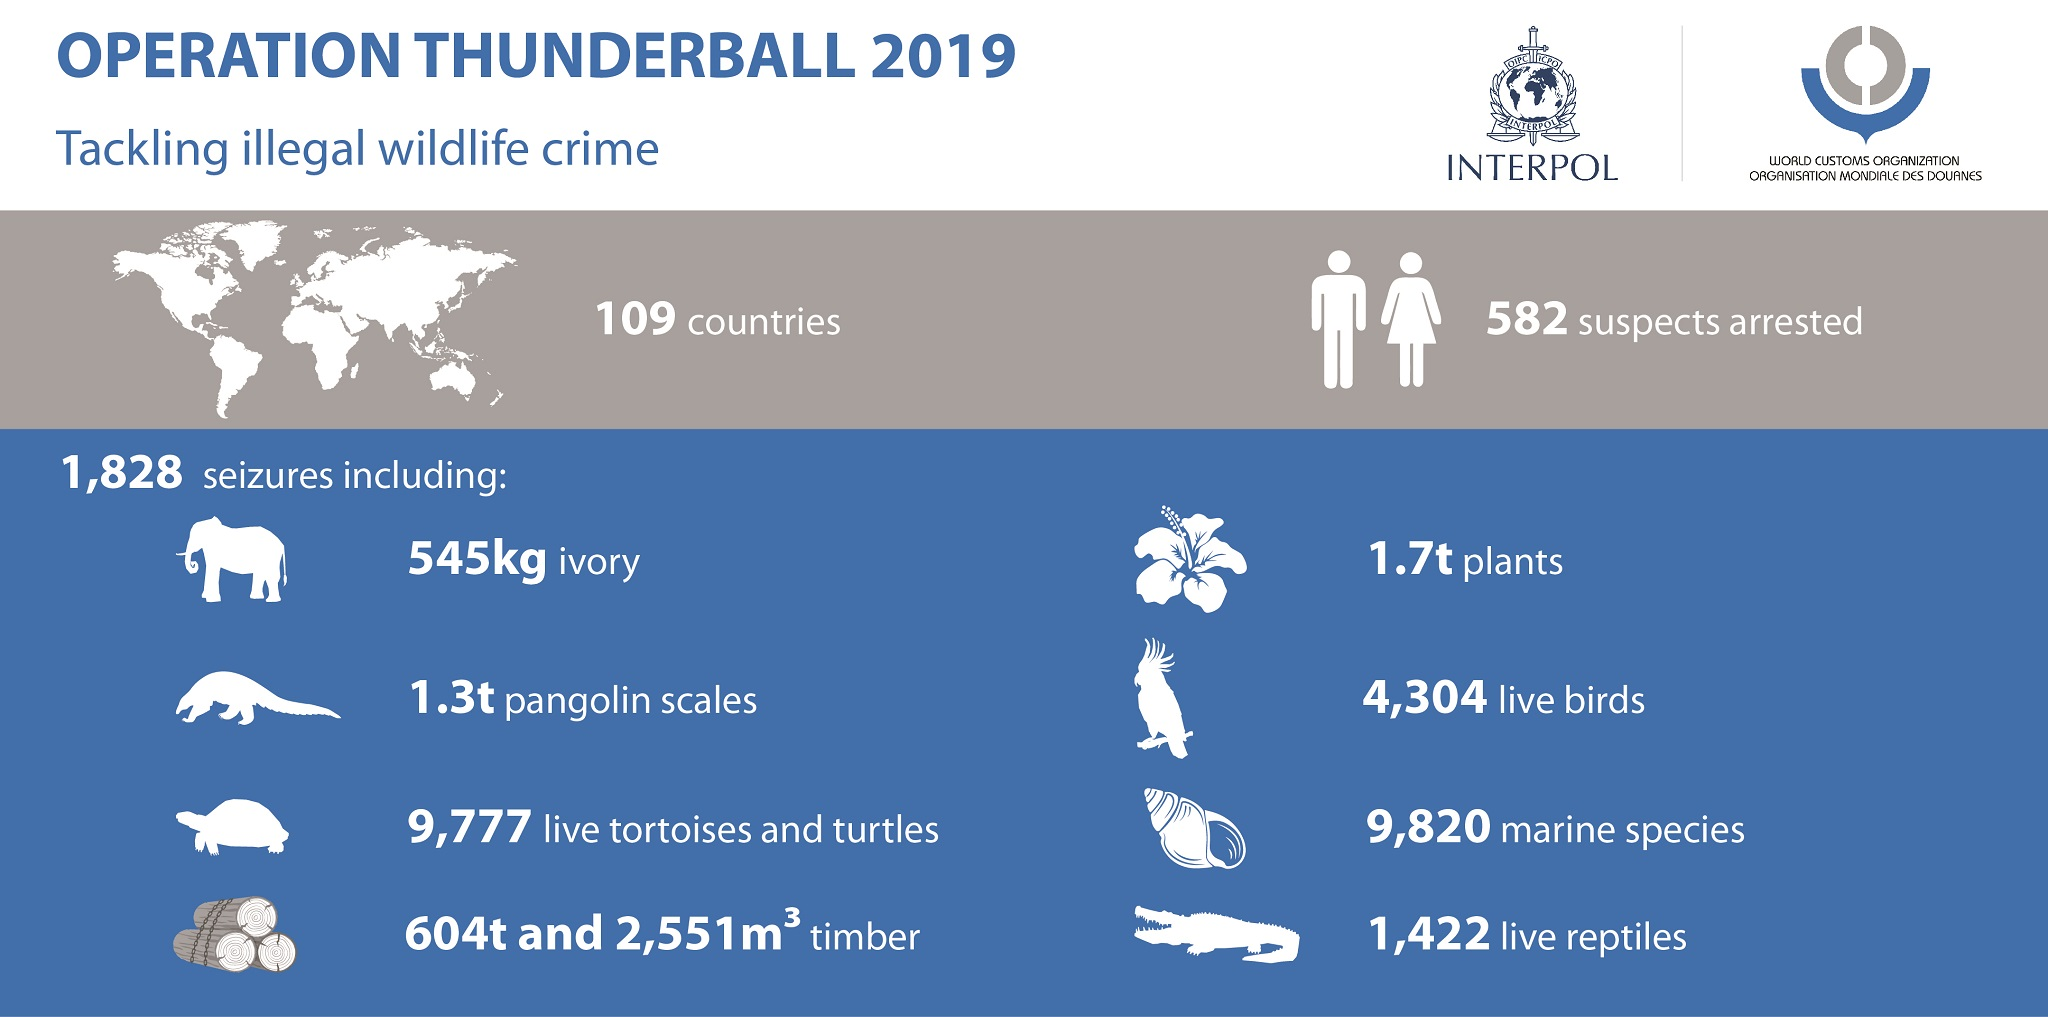 INTERPOL-WCO Operation Thunderball results